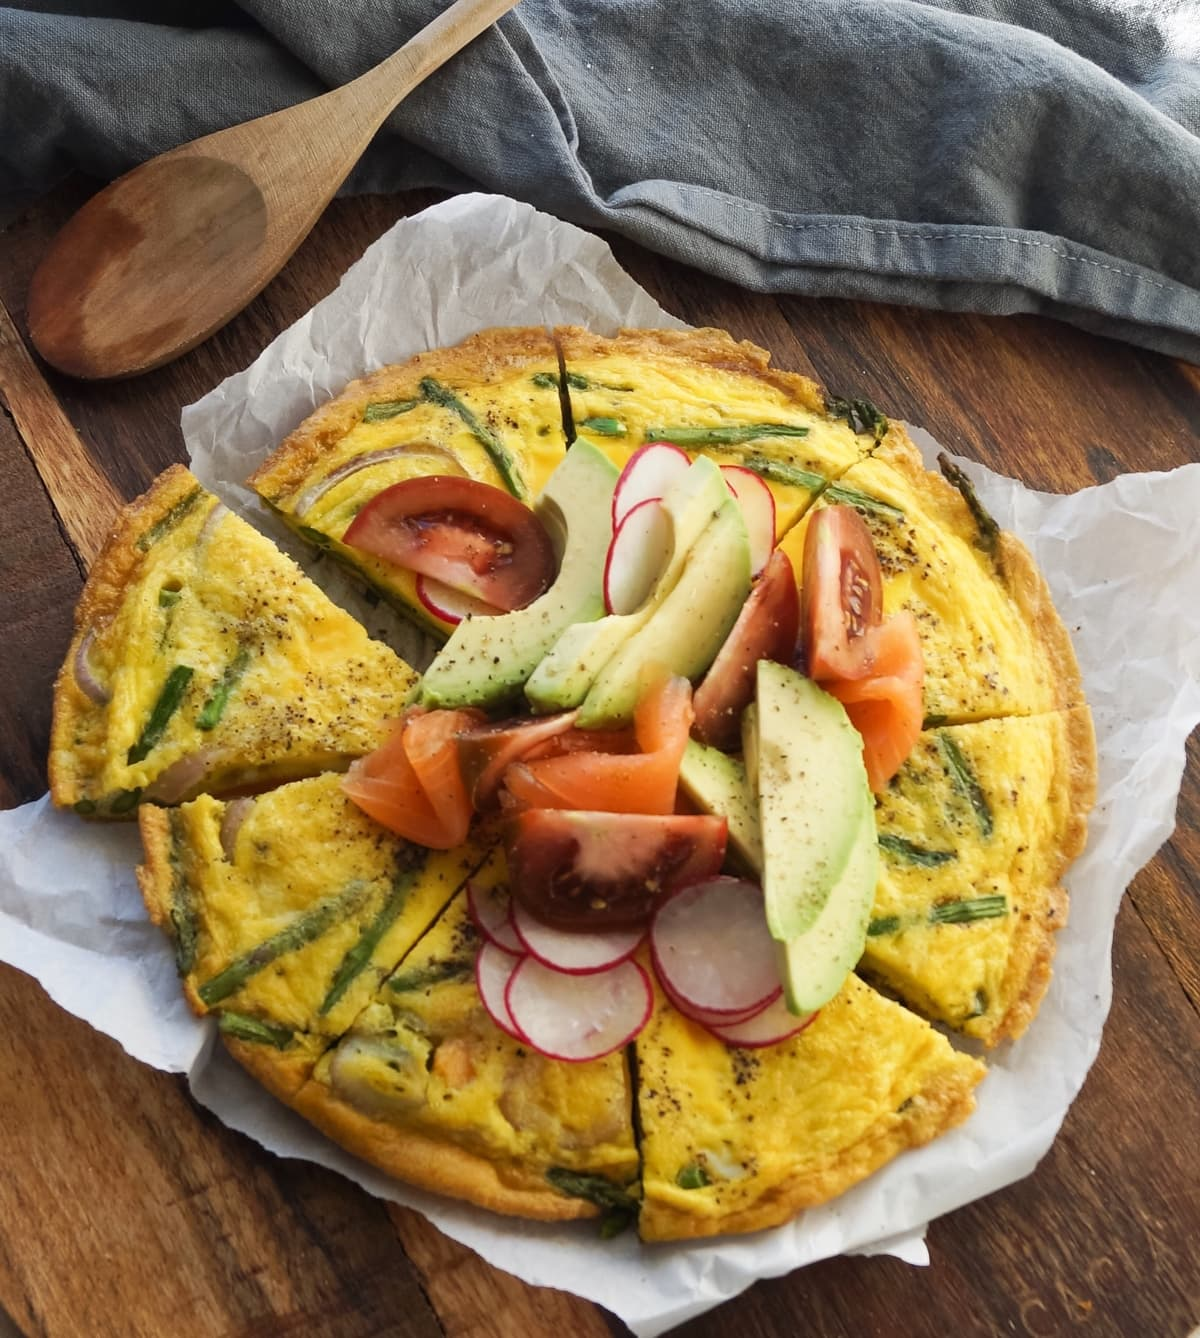 Top down of the finished frittata on a cutting board sliced into 8 pieces, topped with sliced avocado, tomato and radish.